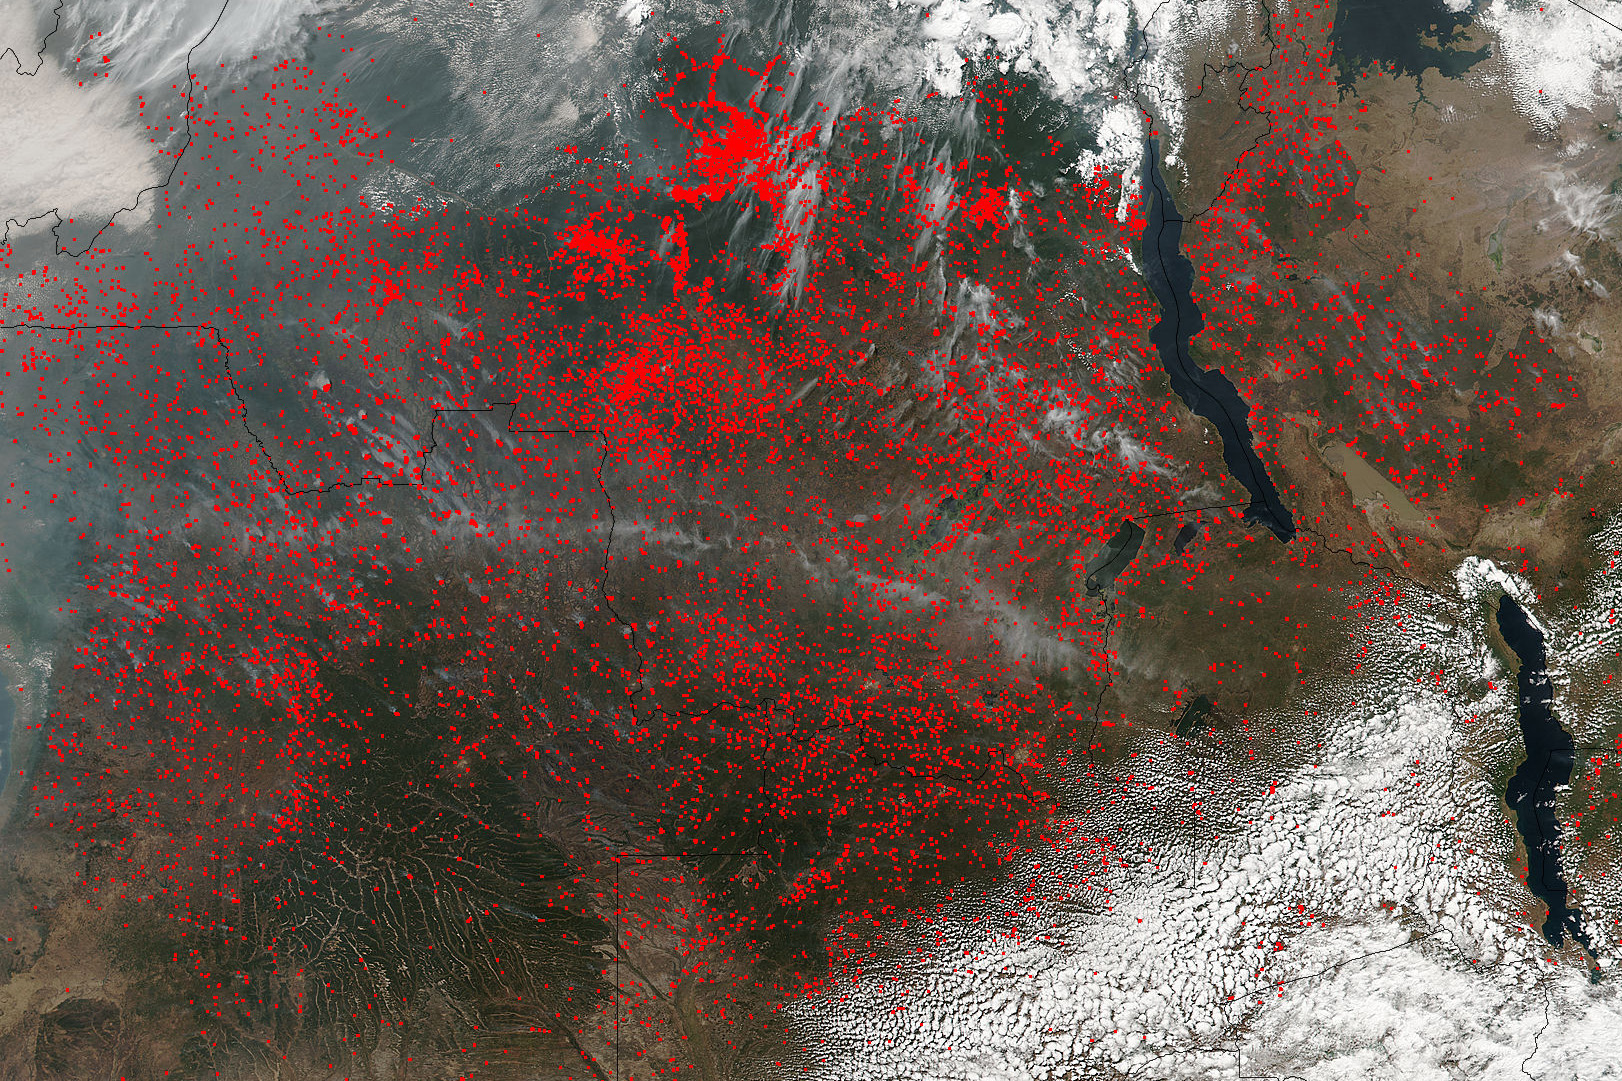 NASA's Suomi NPP satellite detected